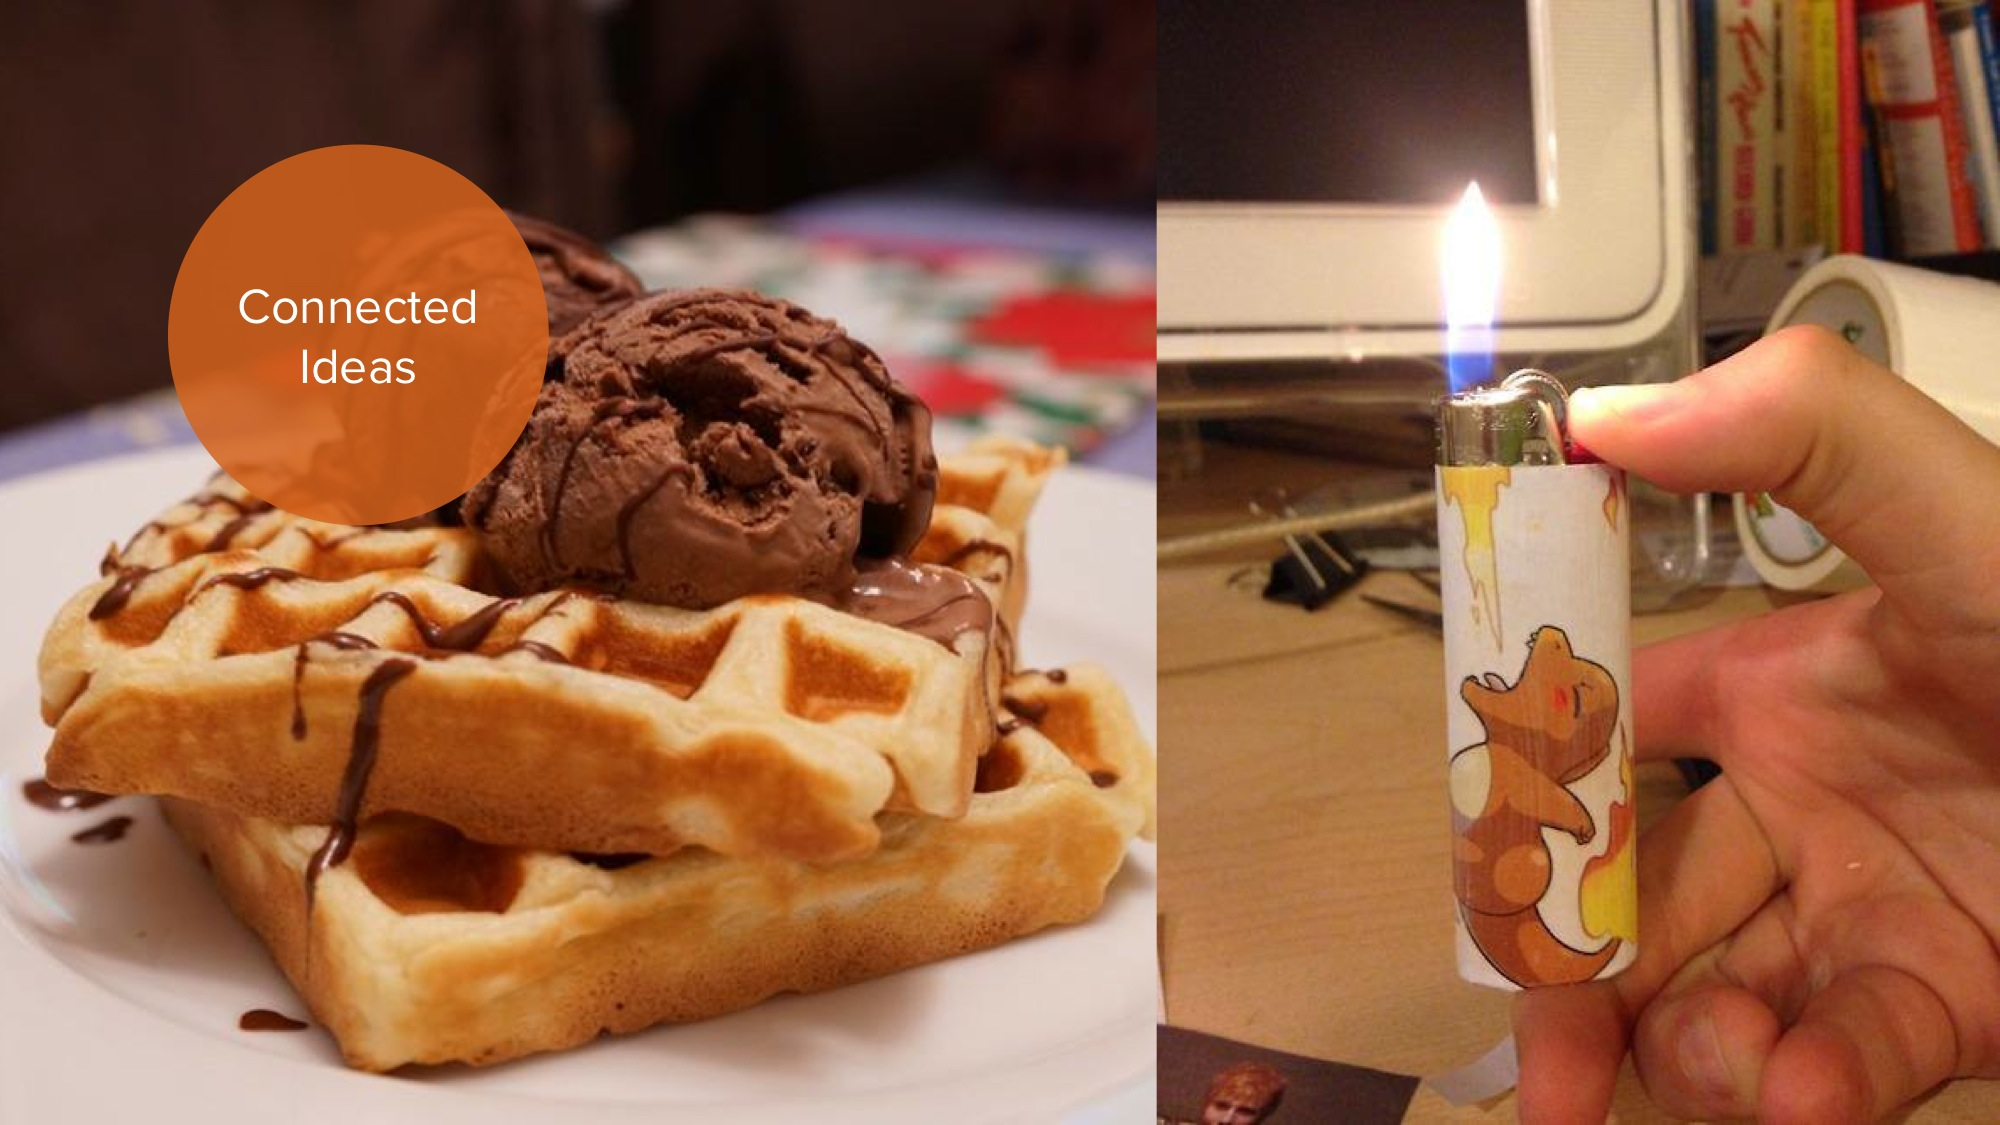 2014.10.17 - -How Are Ideas Connected- Drawing the Design Process of Idea Networks in Global Game Jam- - Meaningful Play 2014 4.jpeg